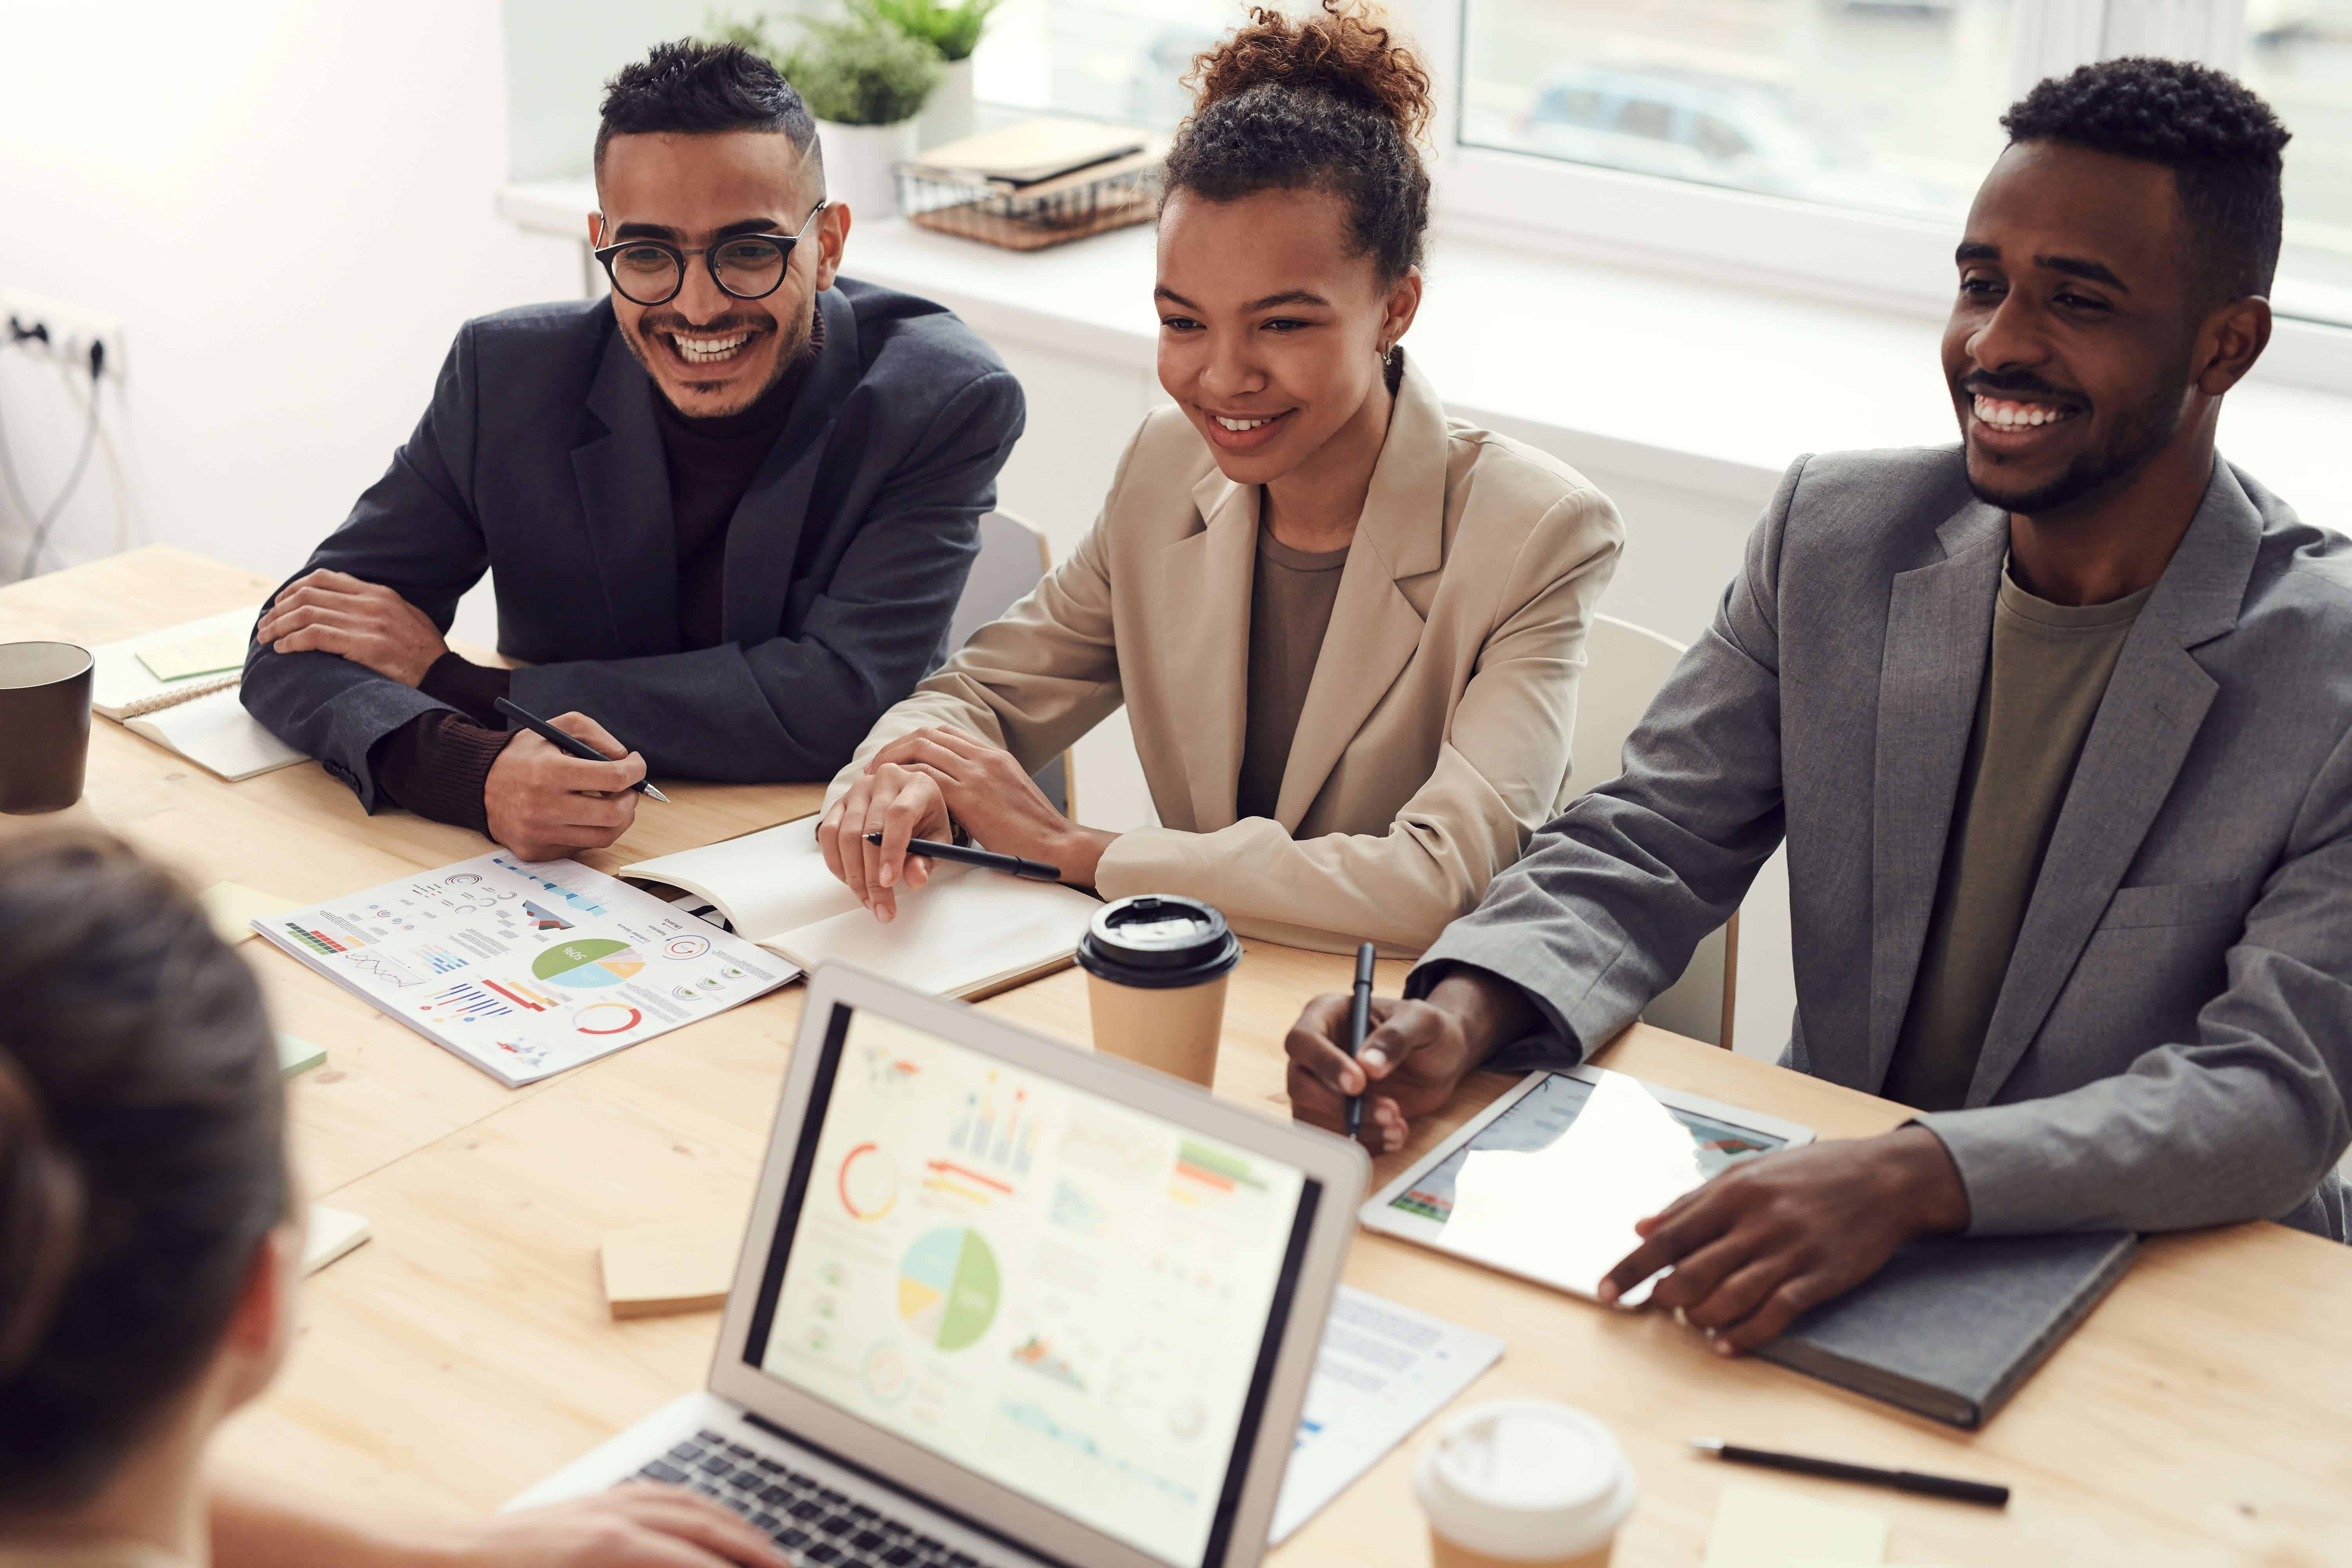 employee retention strategies - employees in a meeting sitting around a table smiling